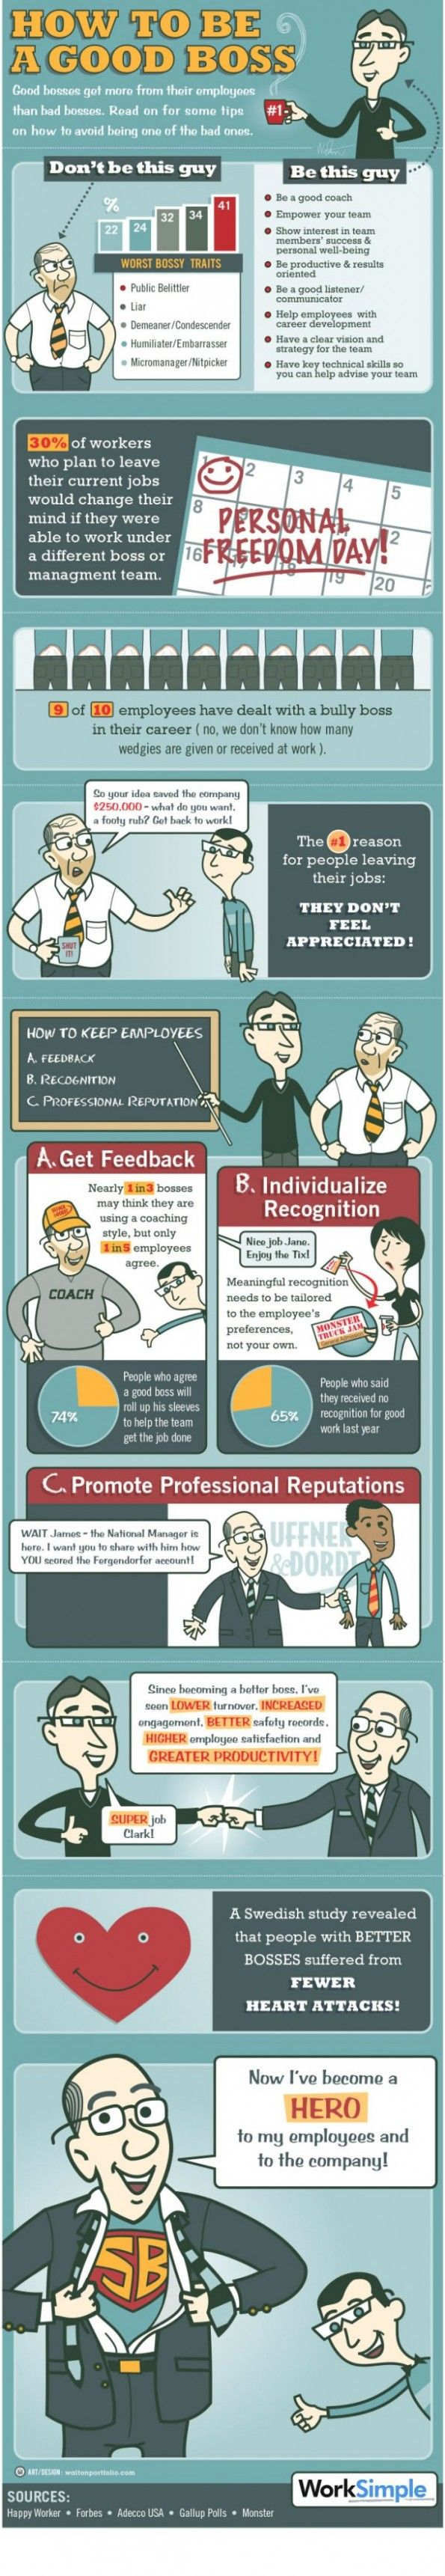 try to make your employees feel appreciated, provide them with useful feedback and help them to promote their professional reputations. Most importantly: treat others as you'd like to be treated.